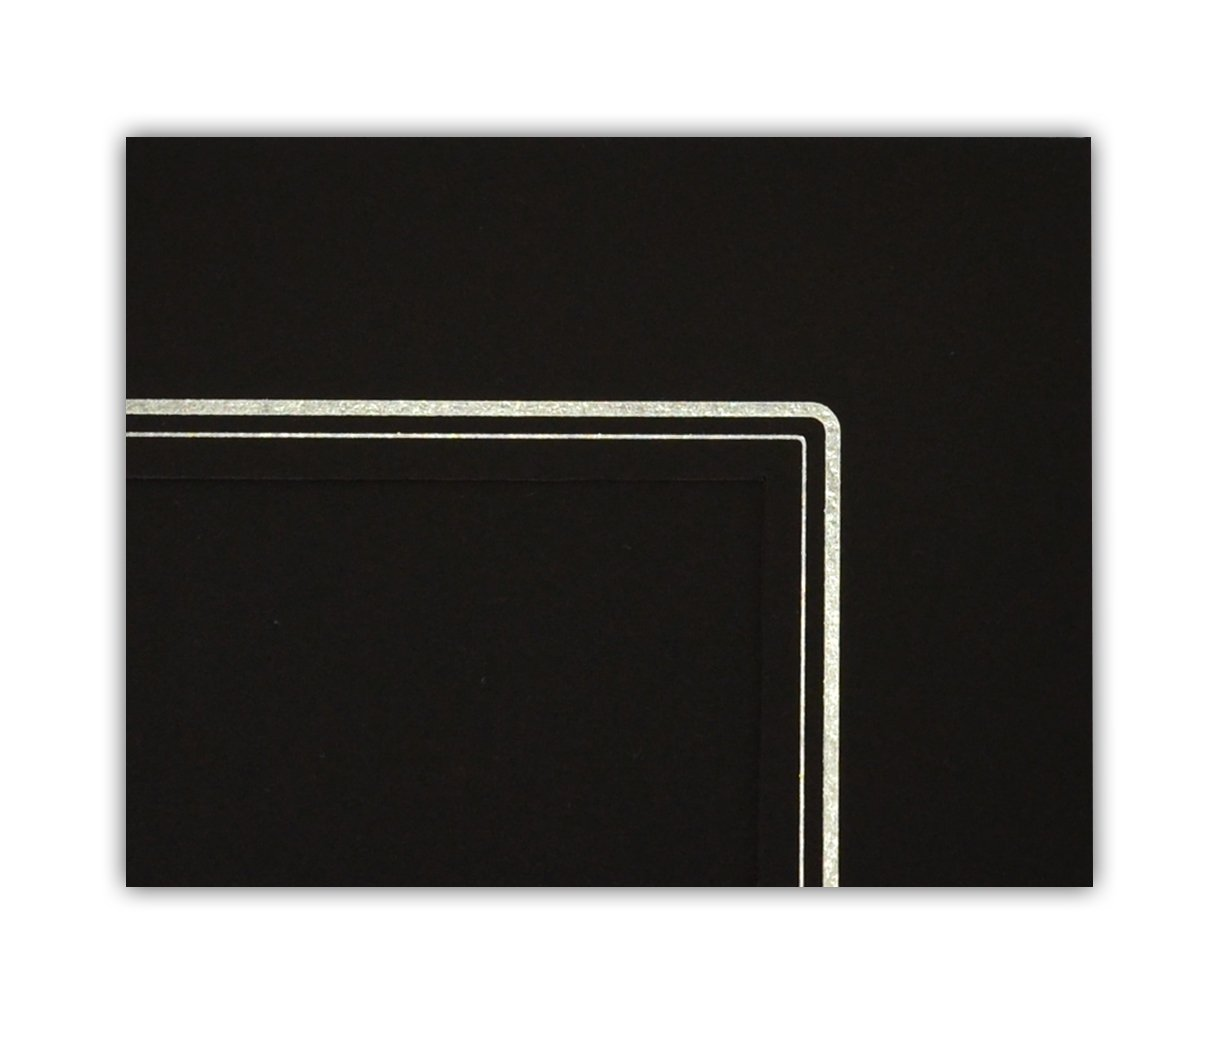 Golden State Art GS001-S Black Color Pack of 100 Cardboard Photo Folder for a 4x6 Photo